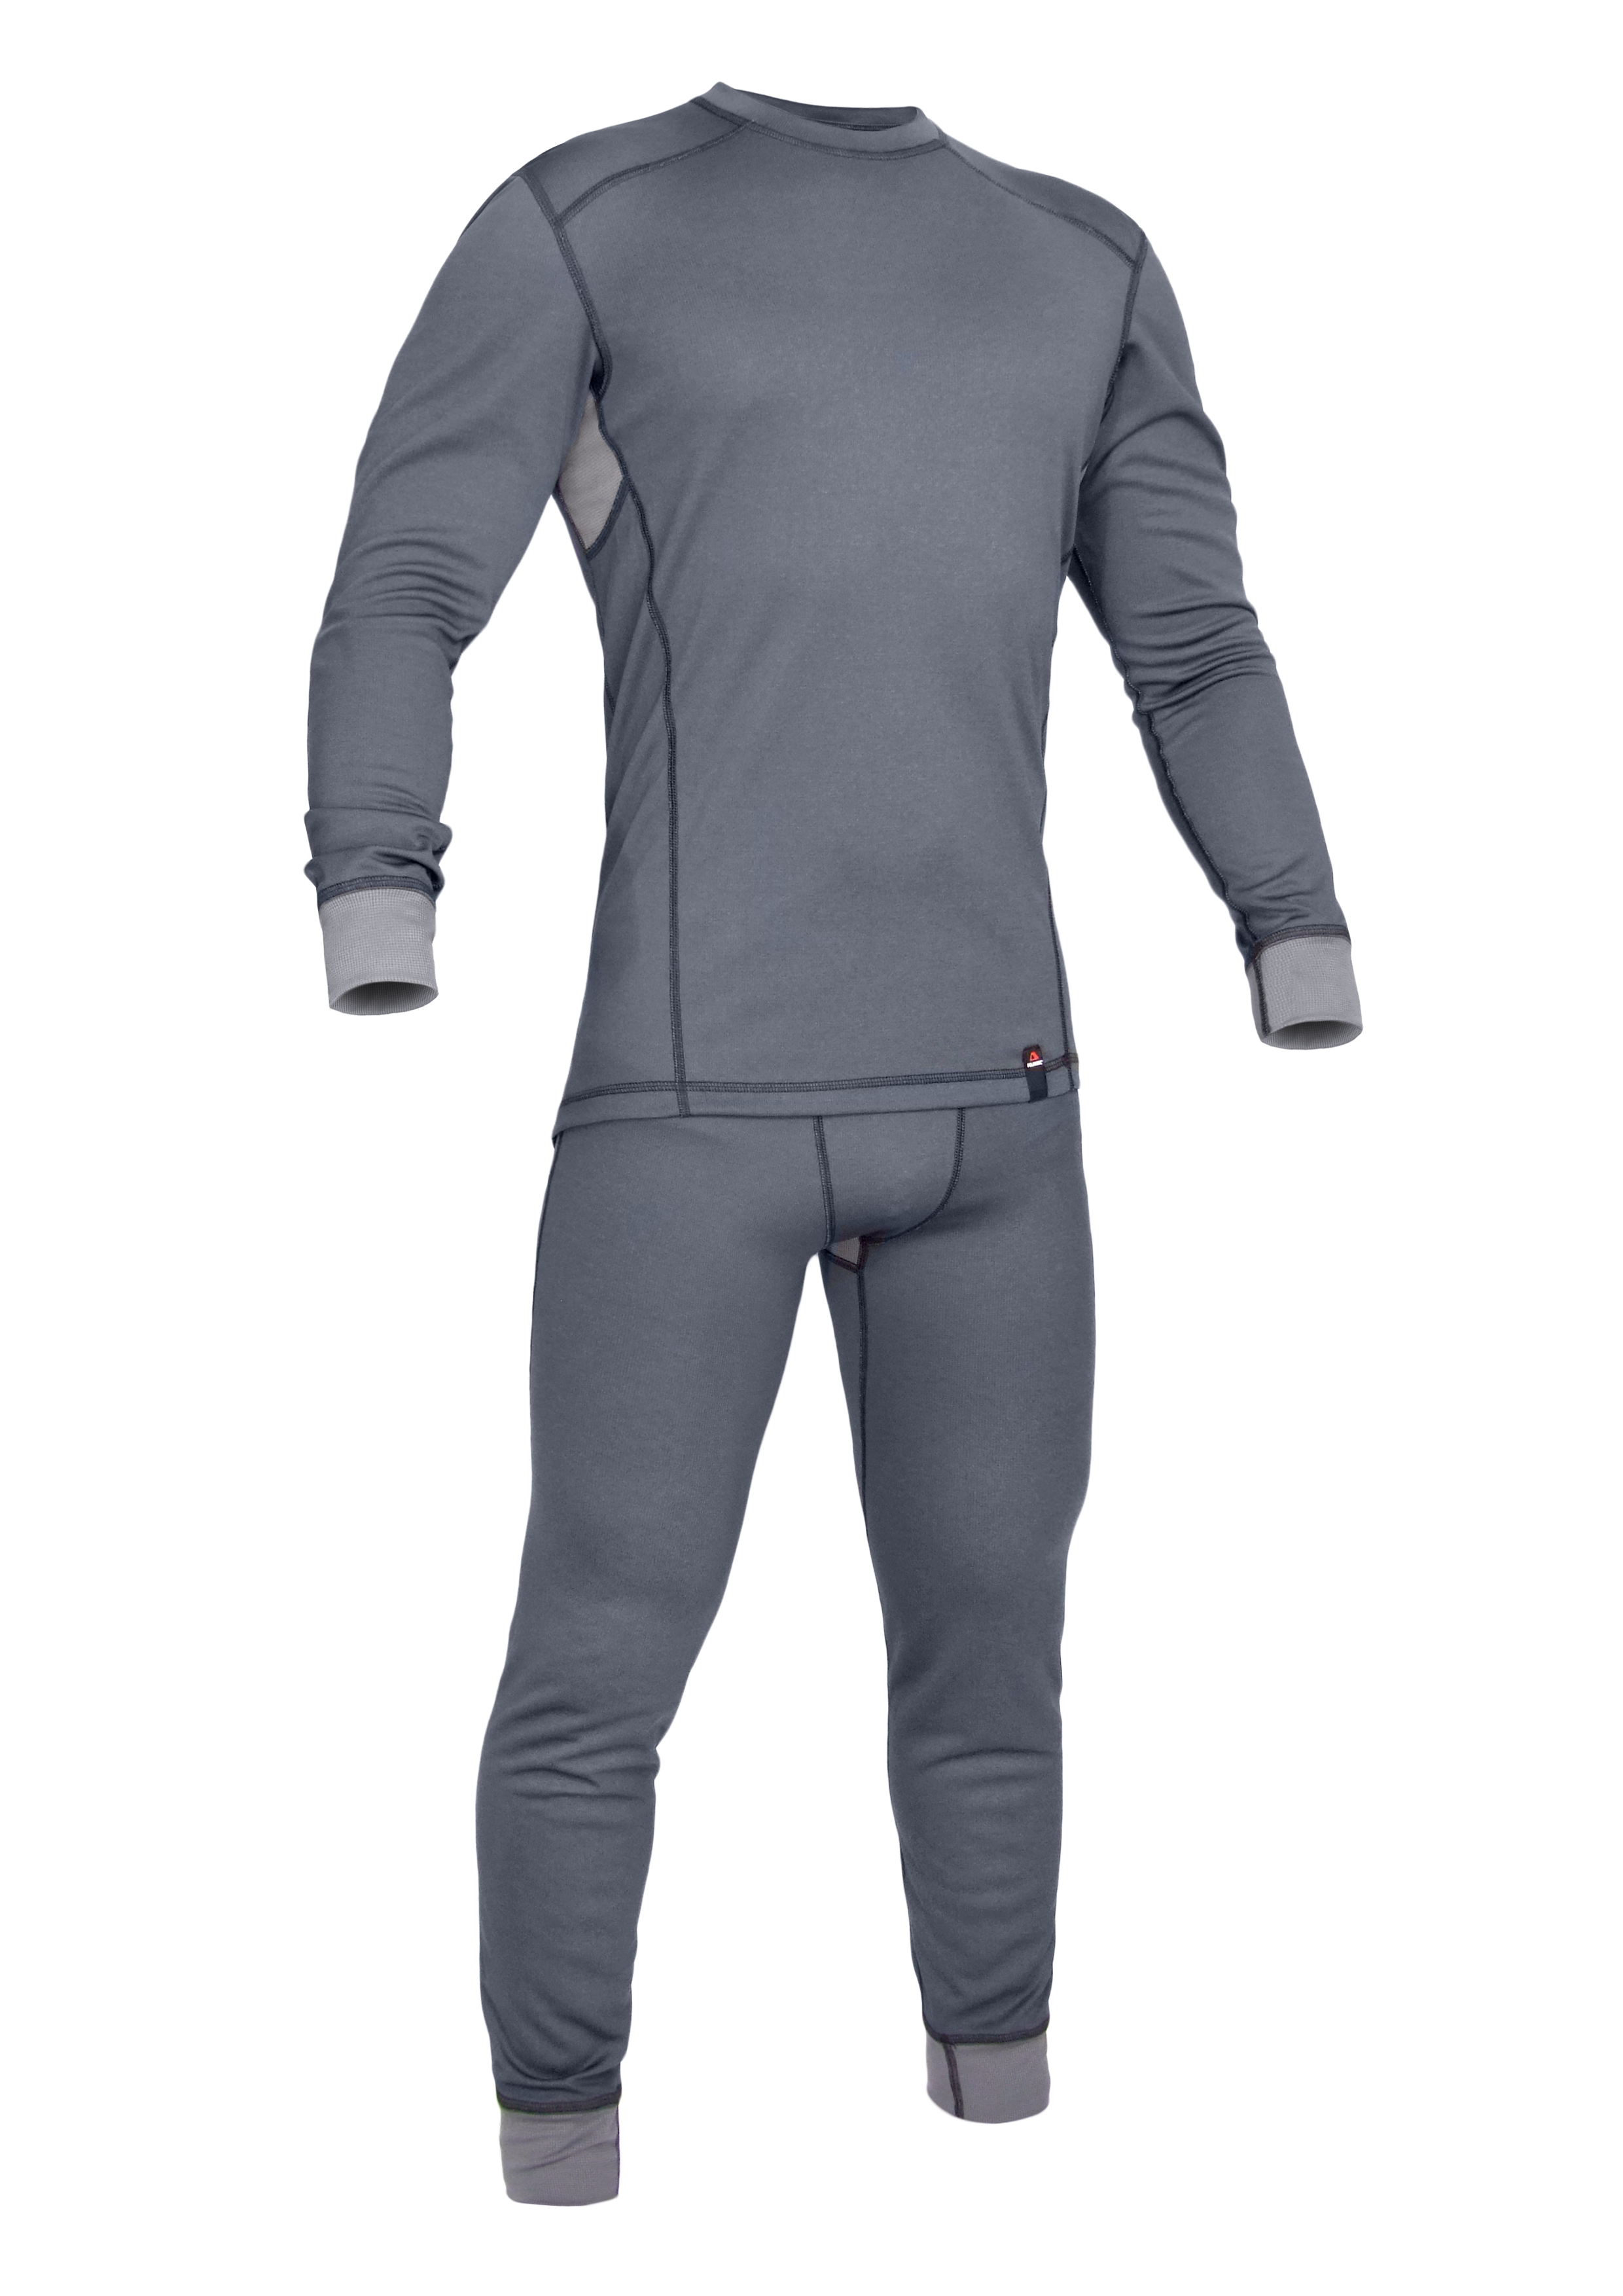 Base layer demi-season suit